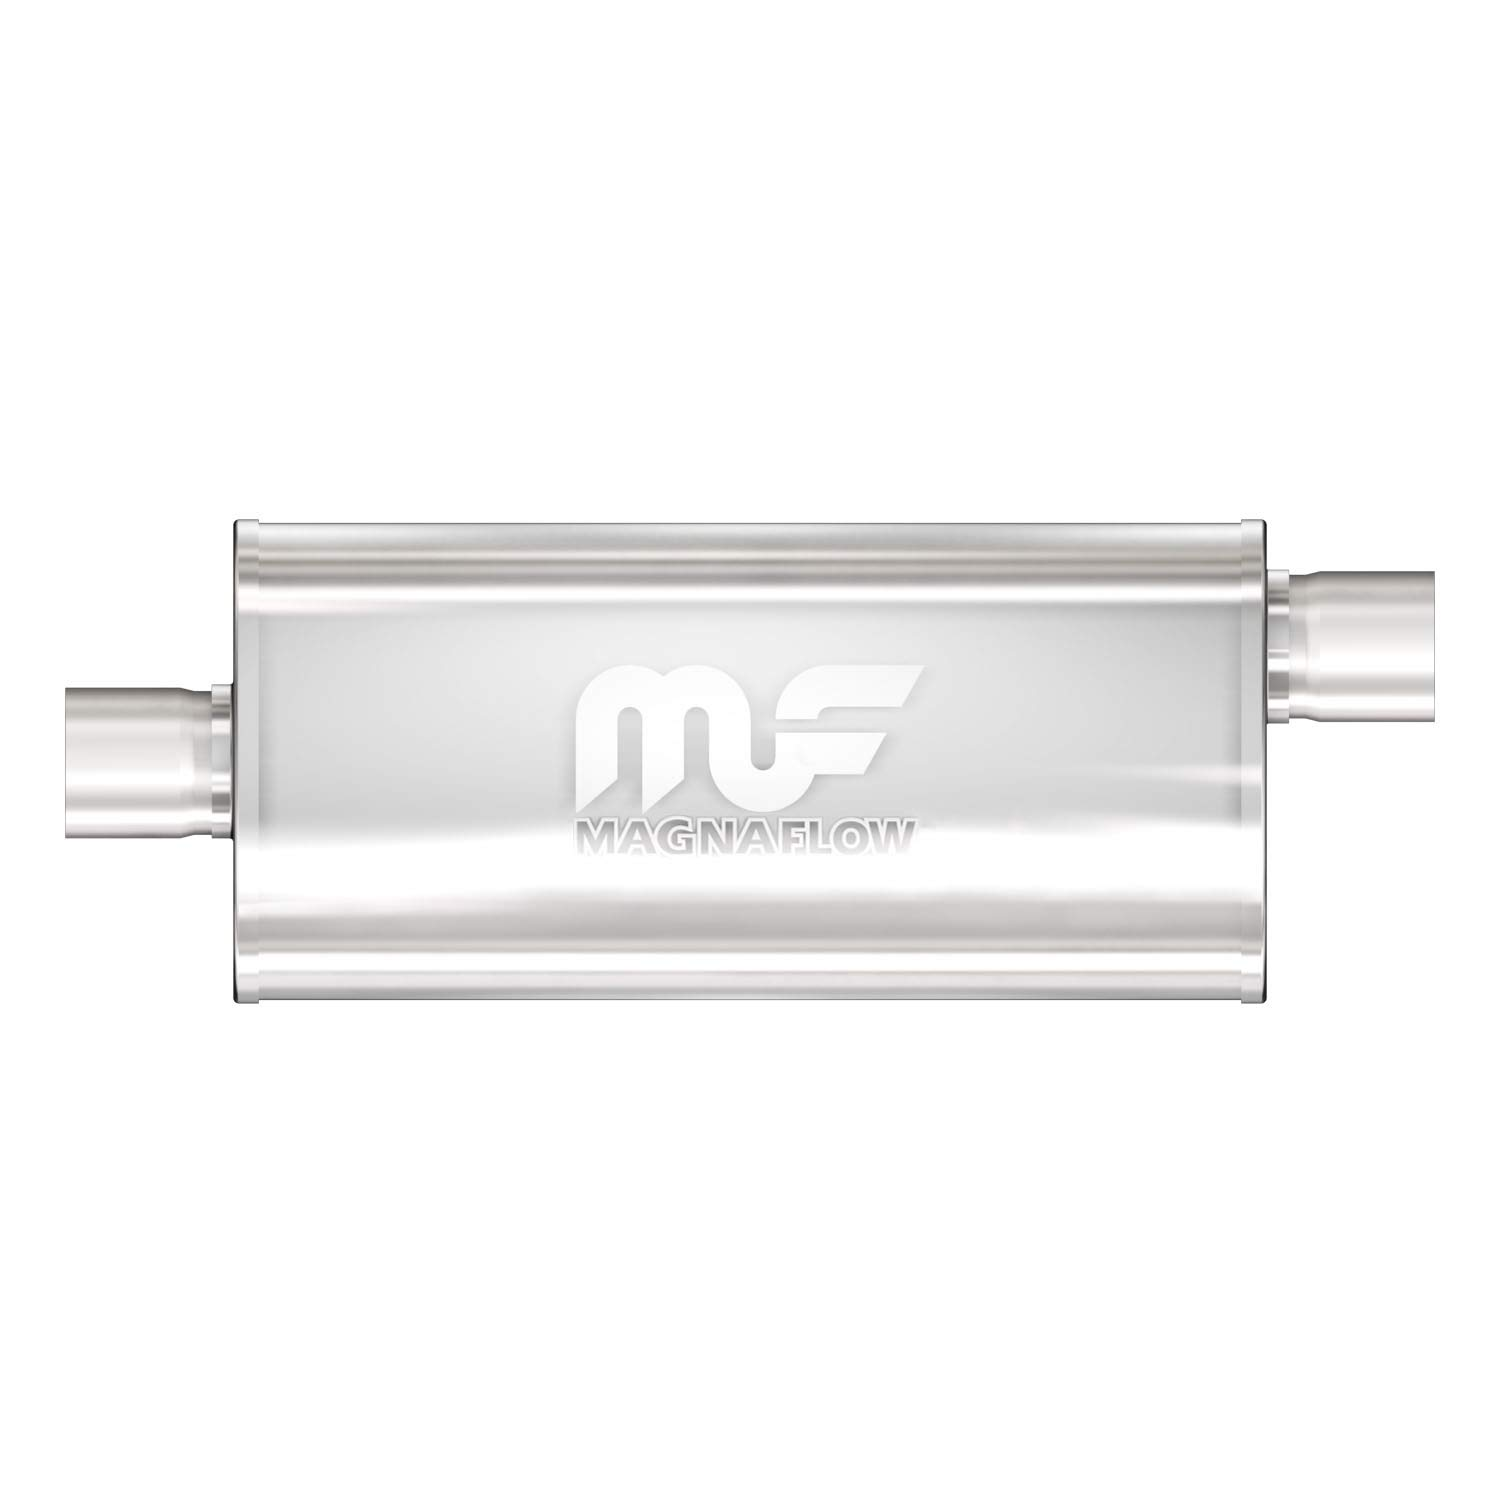 Magnaflow 12255 Satin Stainless Steel 2.25' Oval Muffler MagnaFlow Exhaust Products